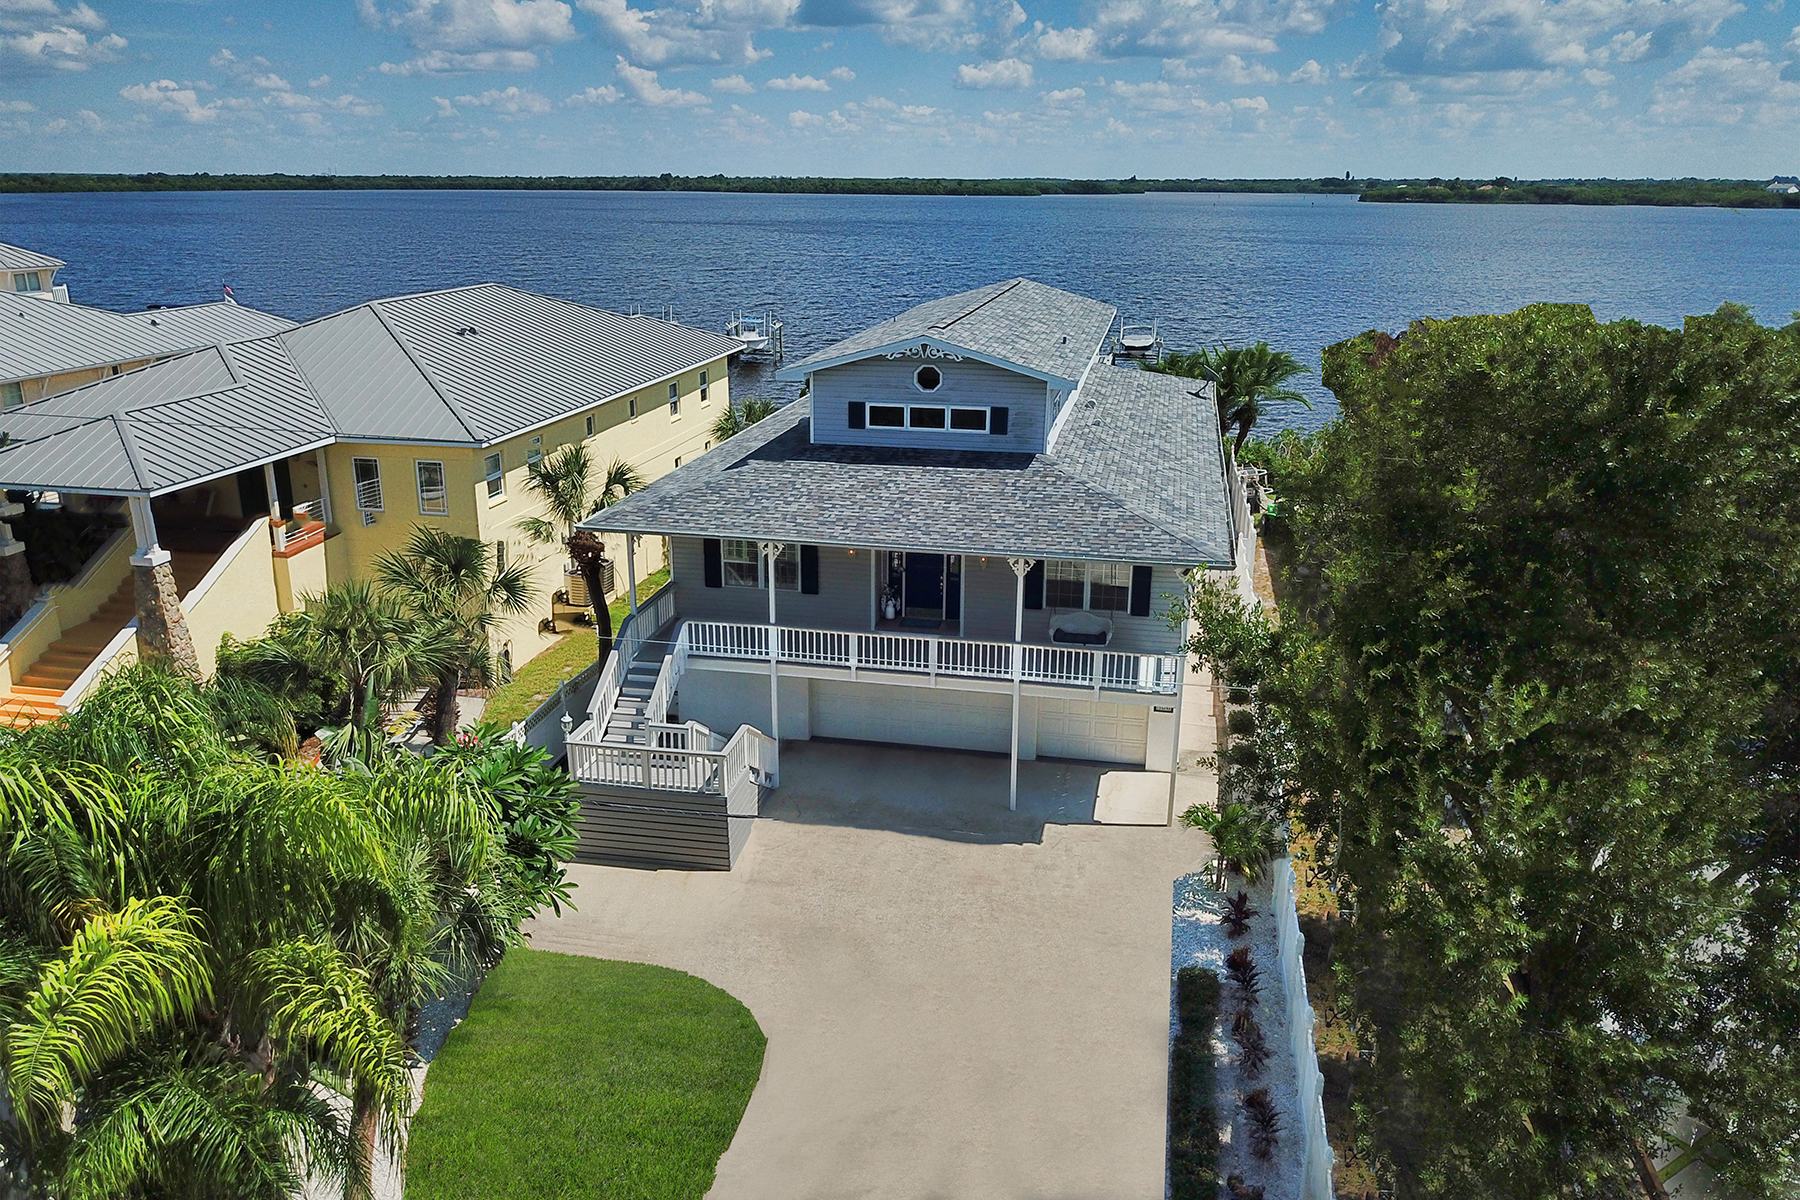 Single Family Homes for Sale at ST. PETERSBURG 920 Weedon Dr St. Petersburg, Florida 33702 United States